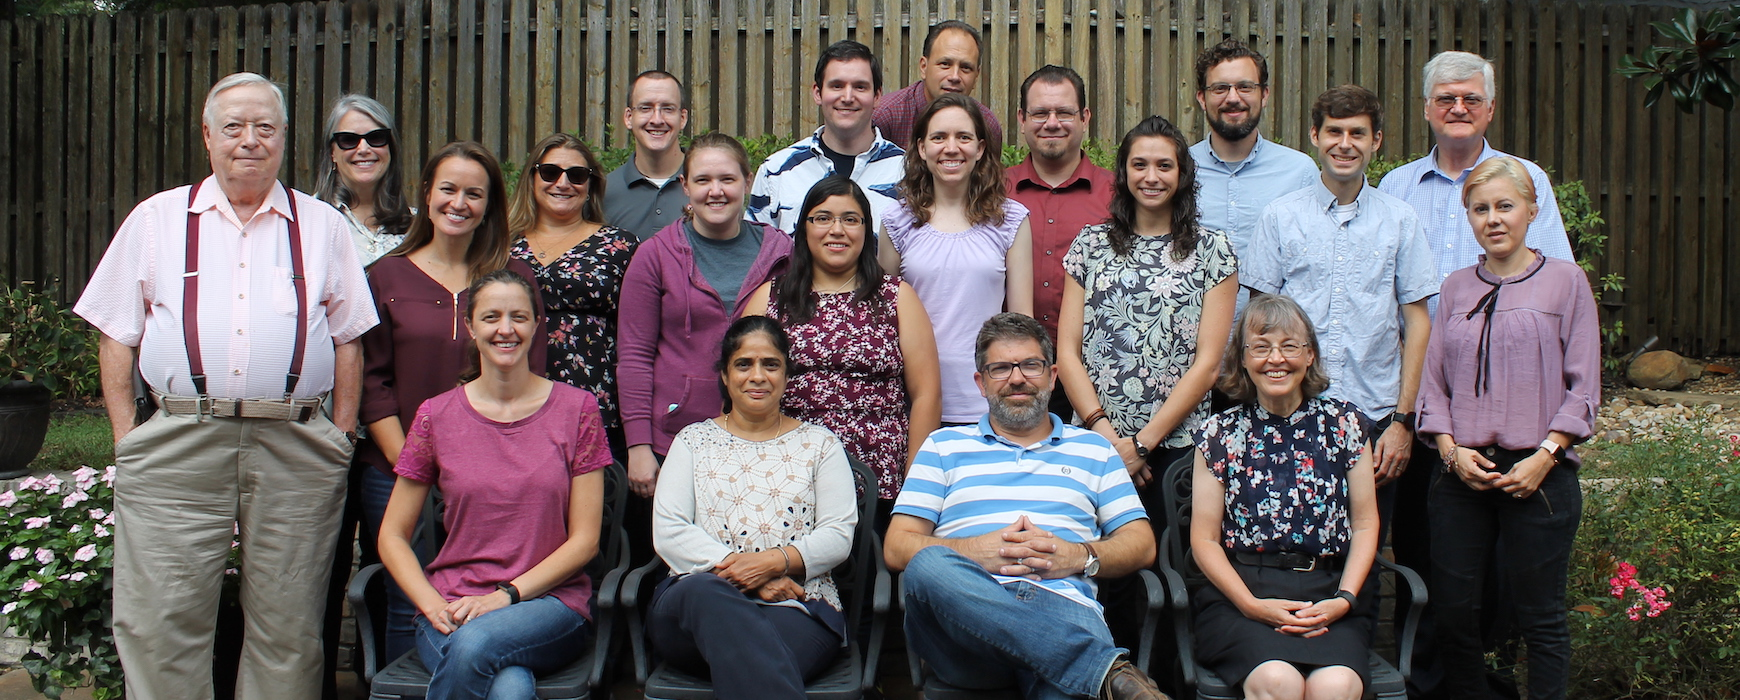 Math faculty and staff for 2019-2020.